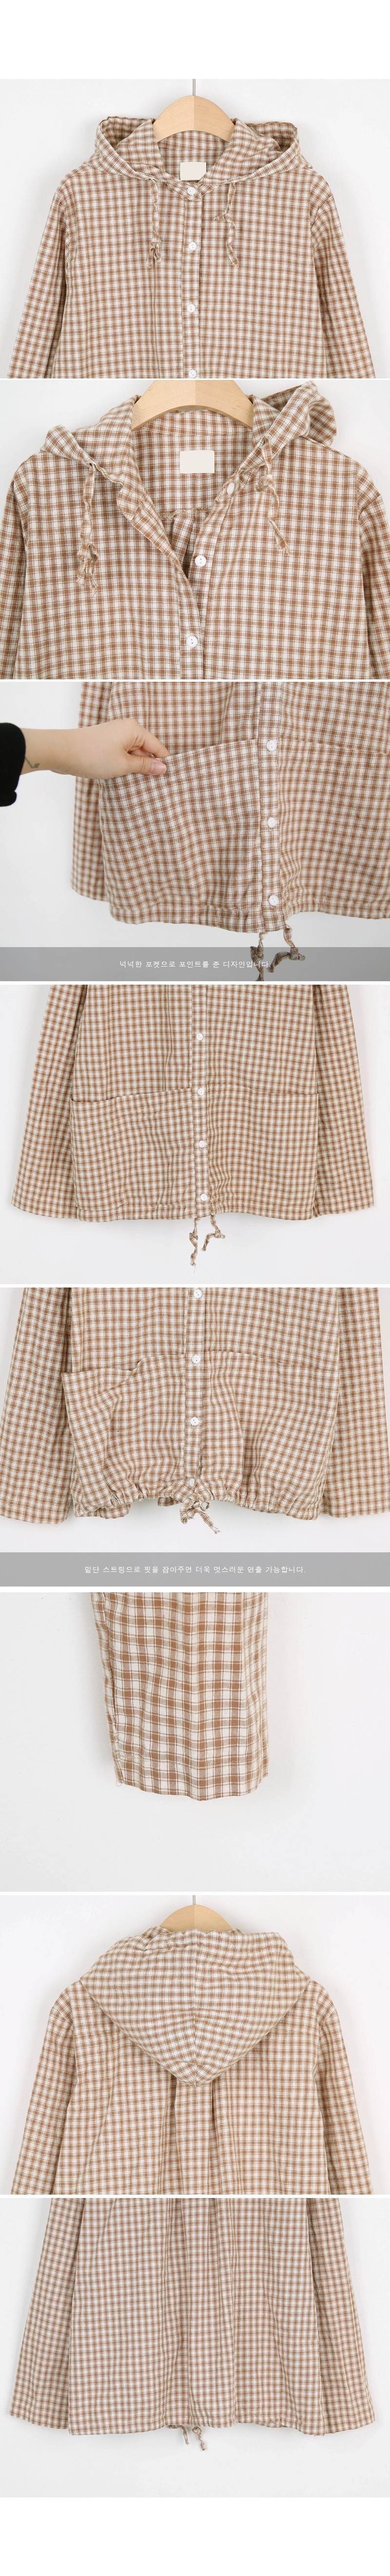 Gingham check hooded blouse